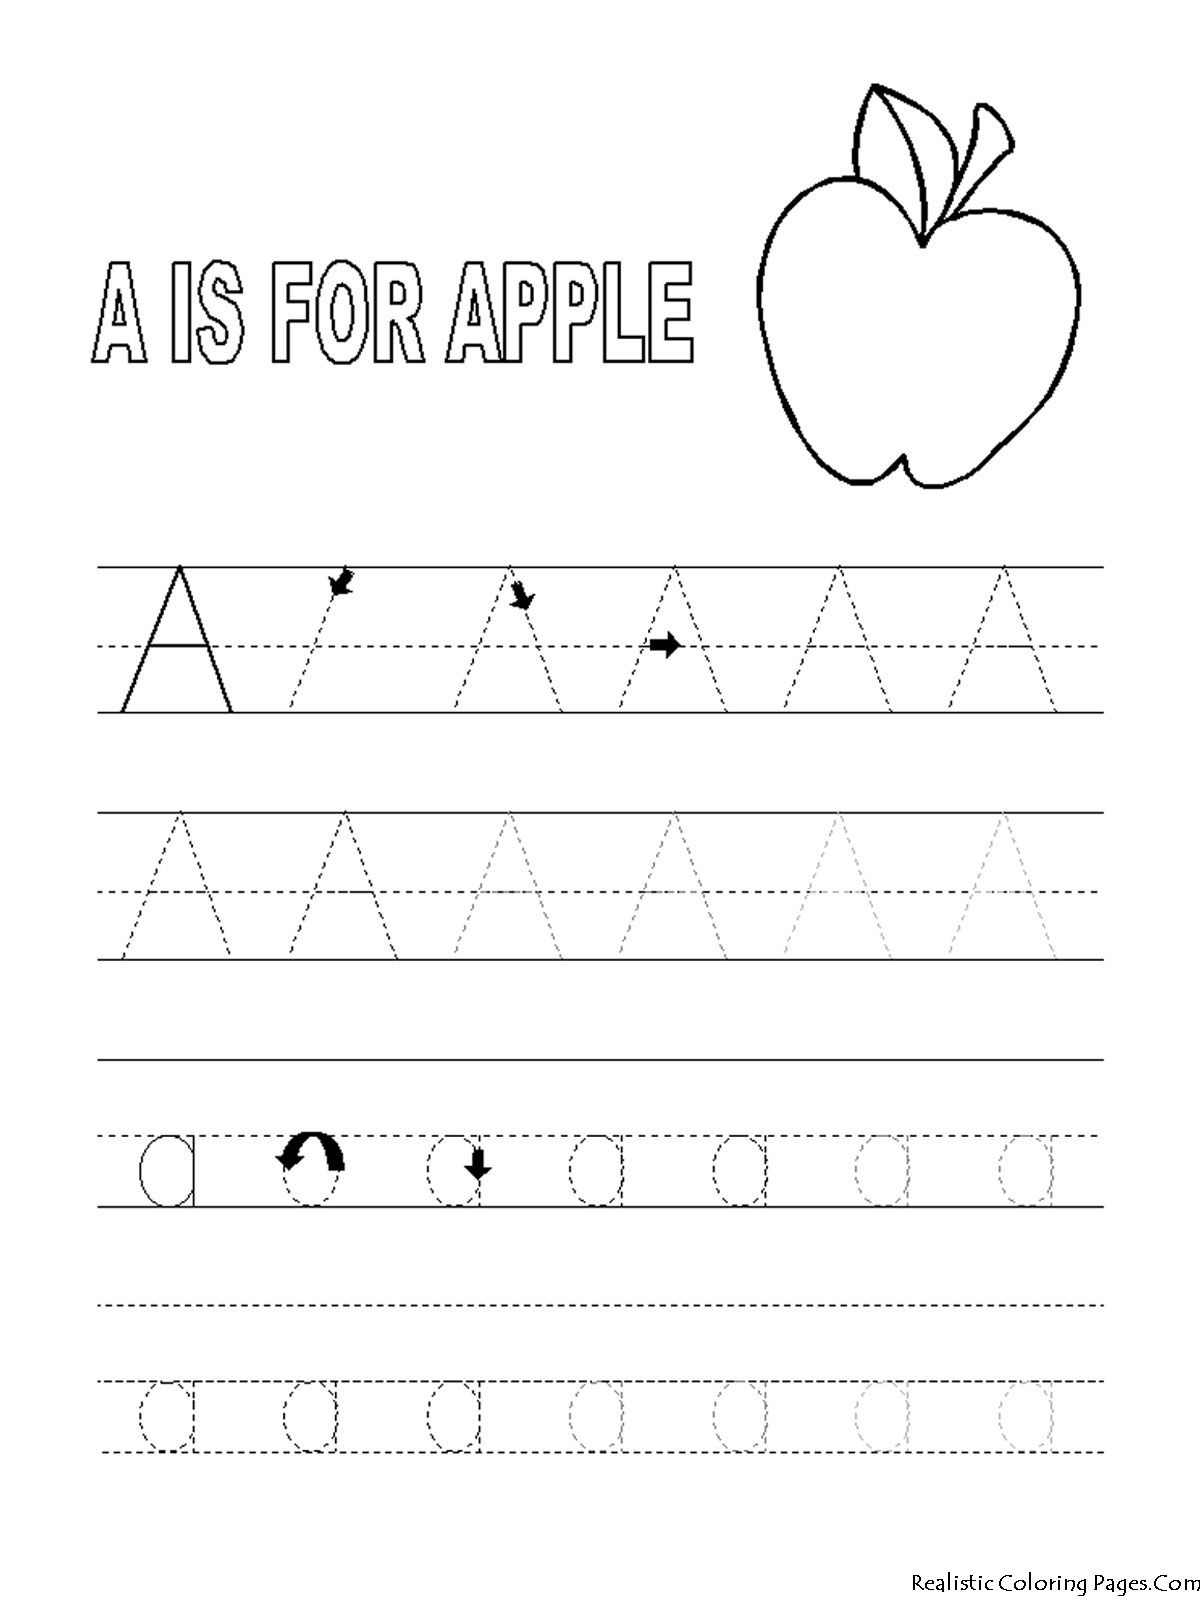 Alphabet Tracer Pages A For Apple | Coloring Pages | Alphabet - Free Printable Preschool Name Tracer Pages